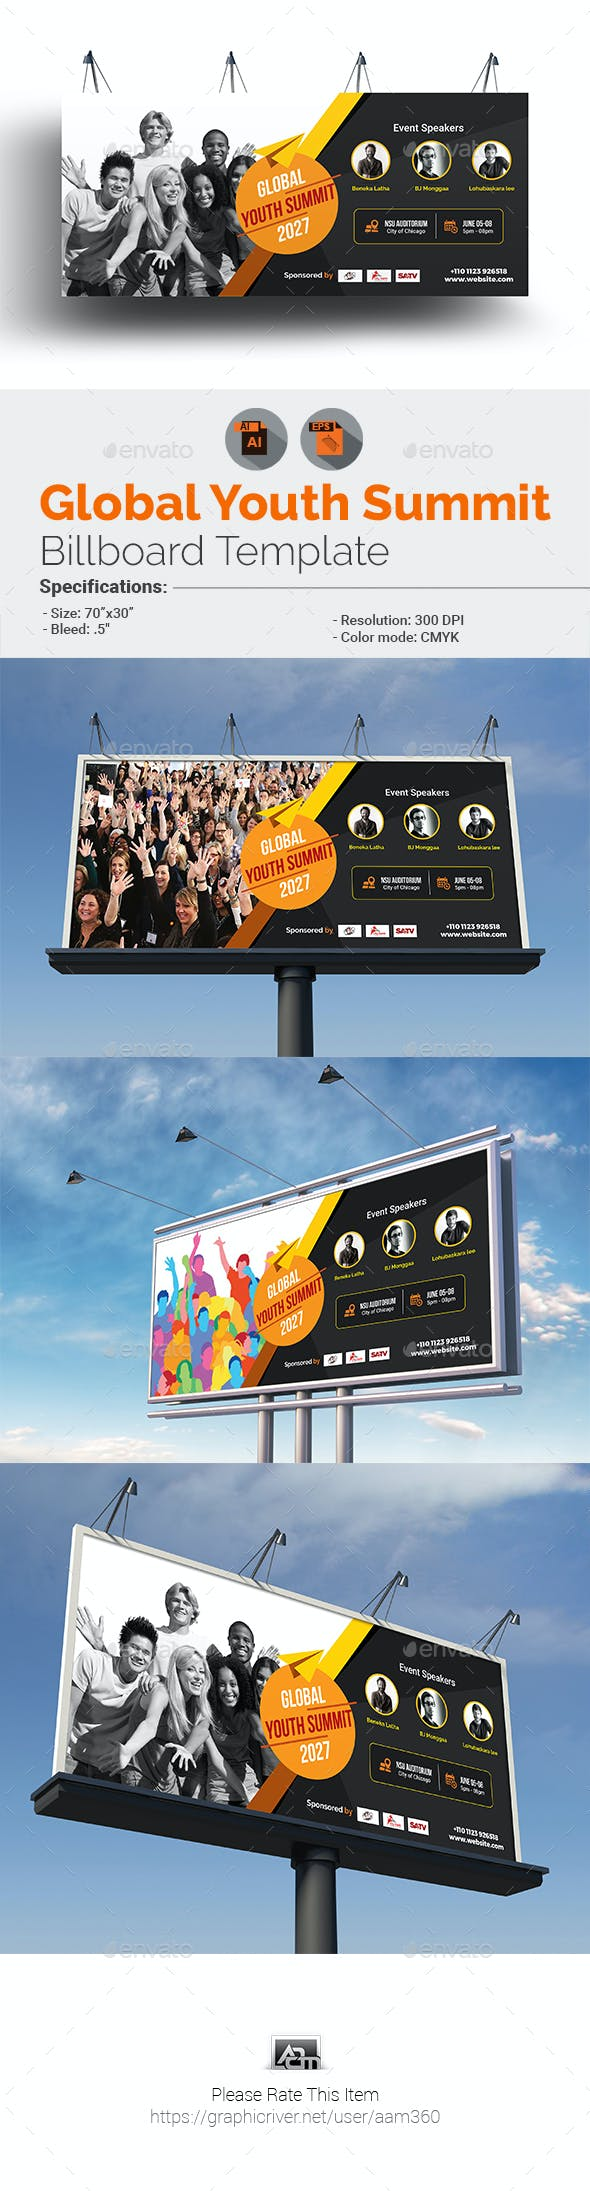 Global Youth Summit Billboard Template